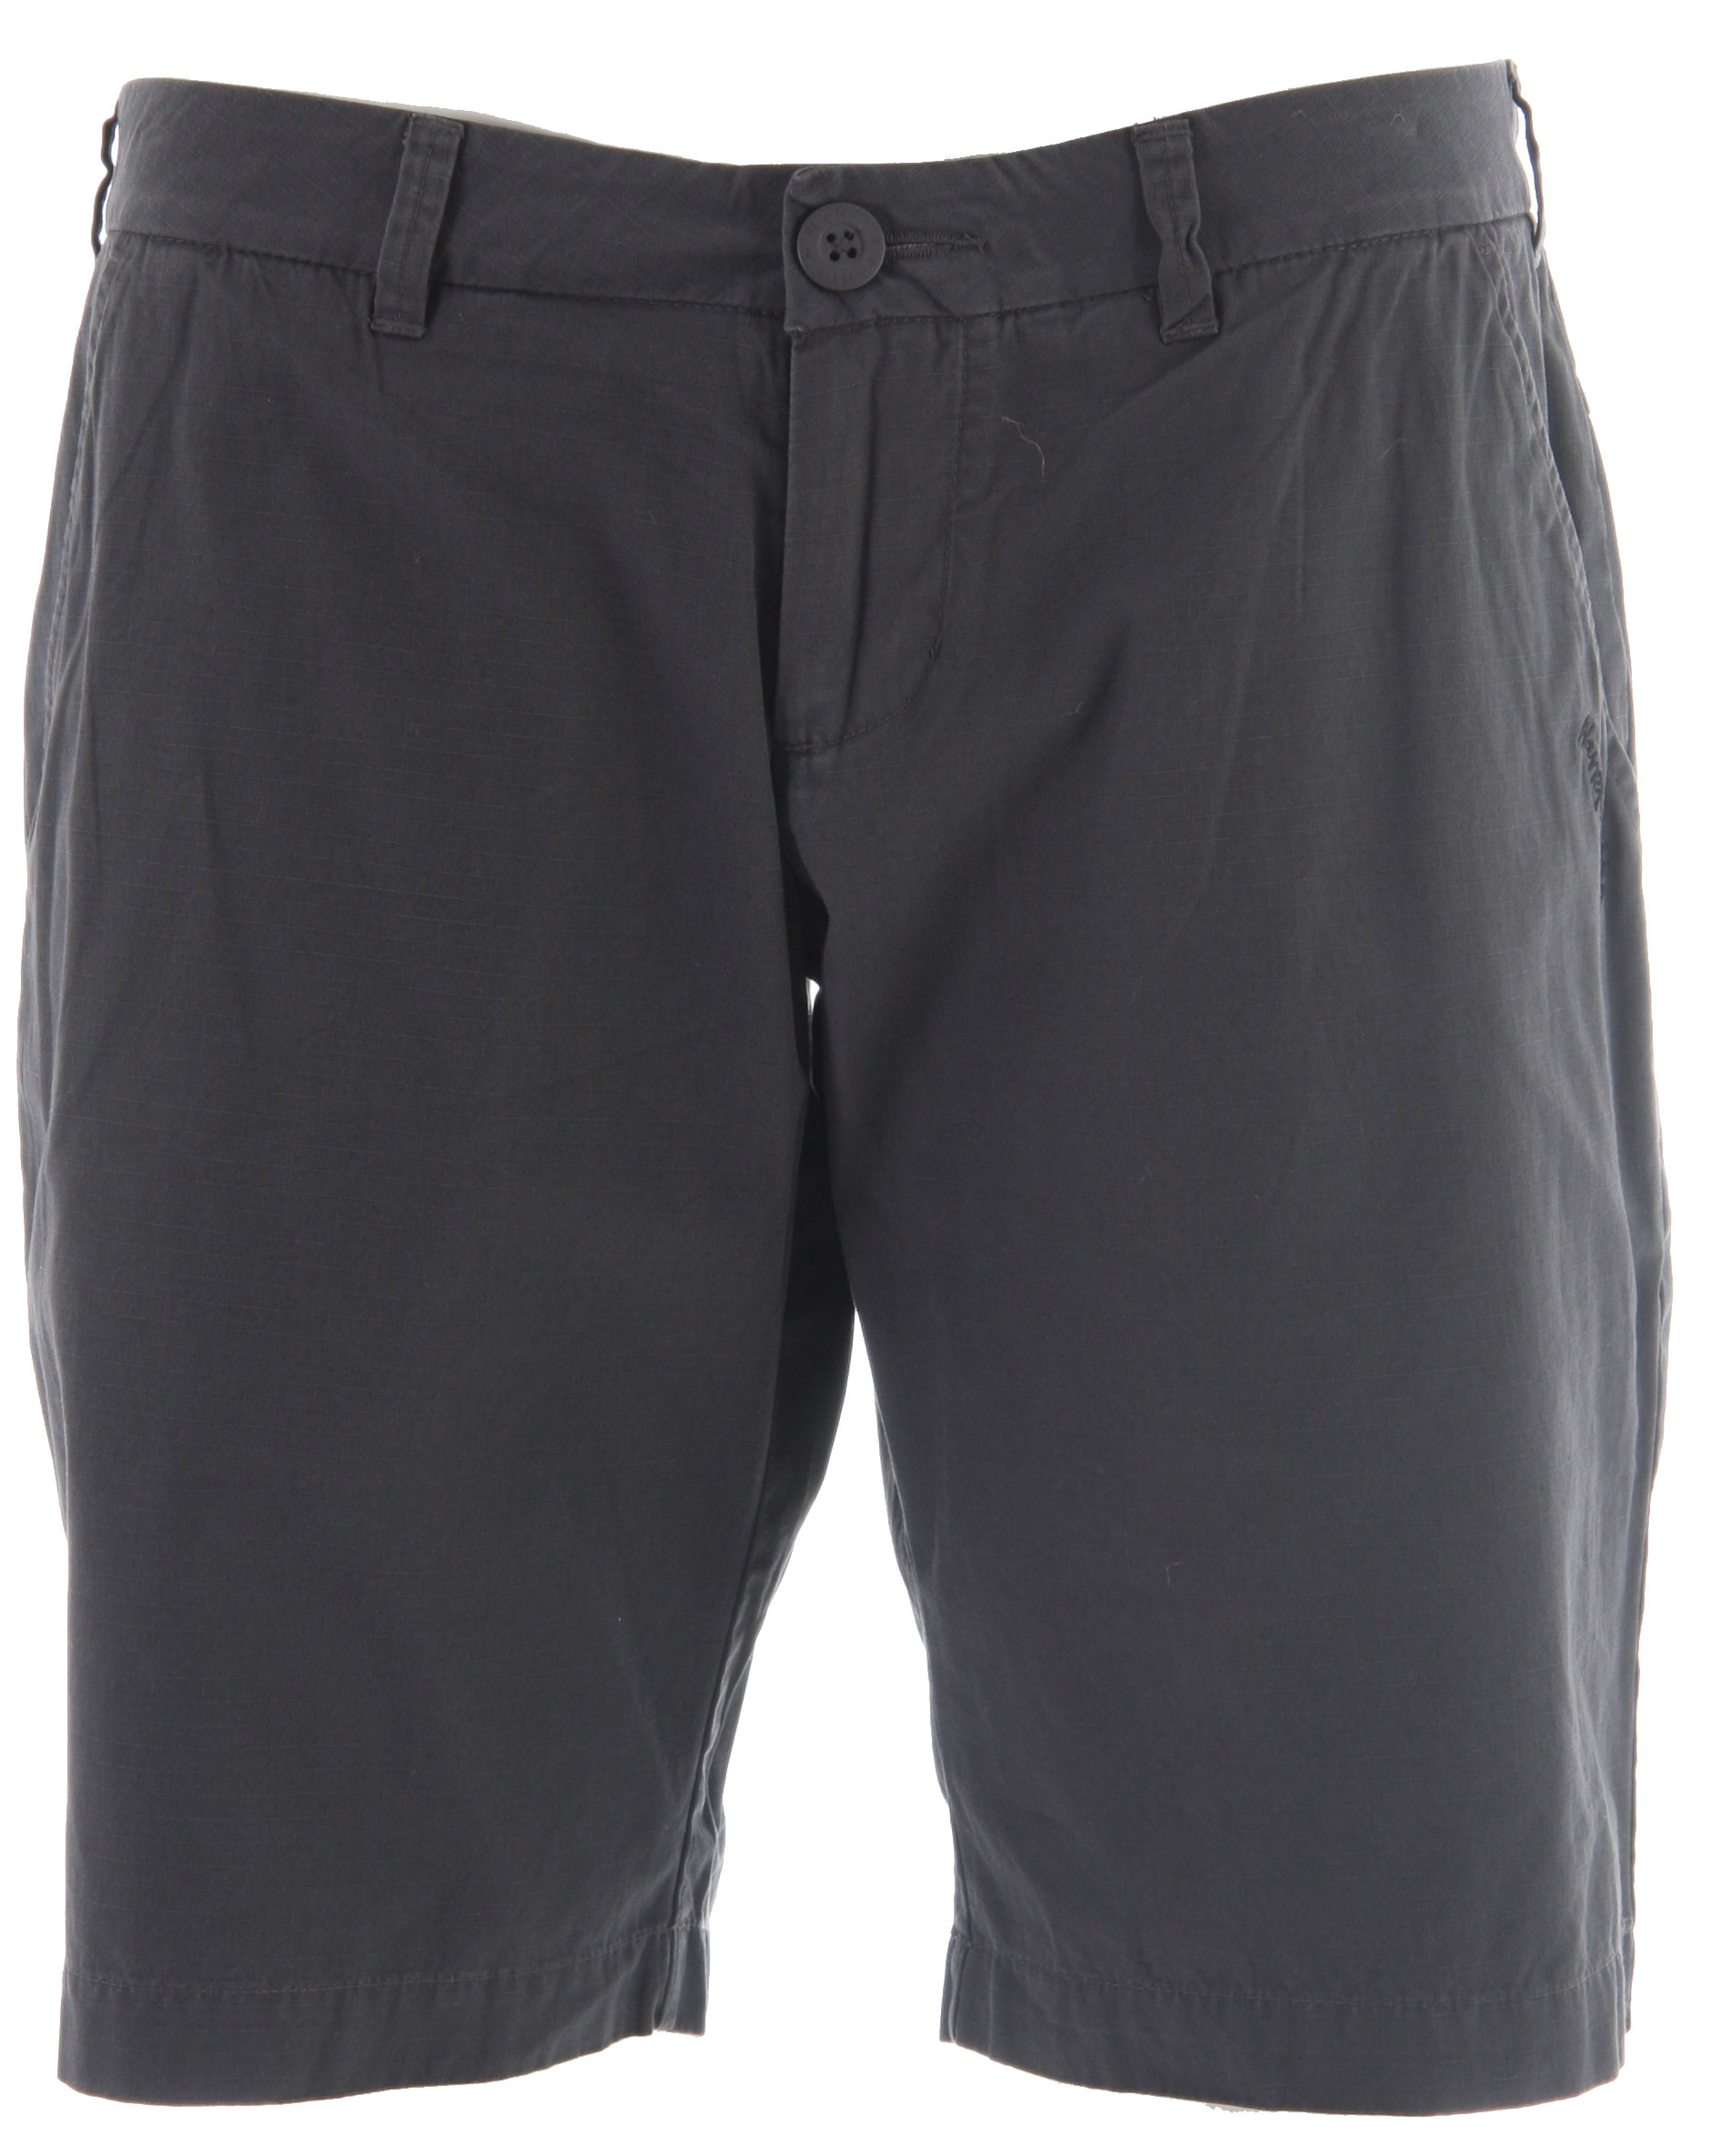 Planet Earth Preston Shorts Asphalt - $21.25